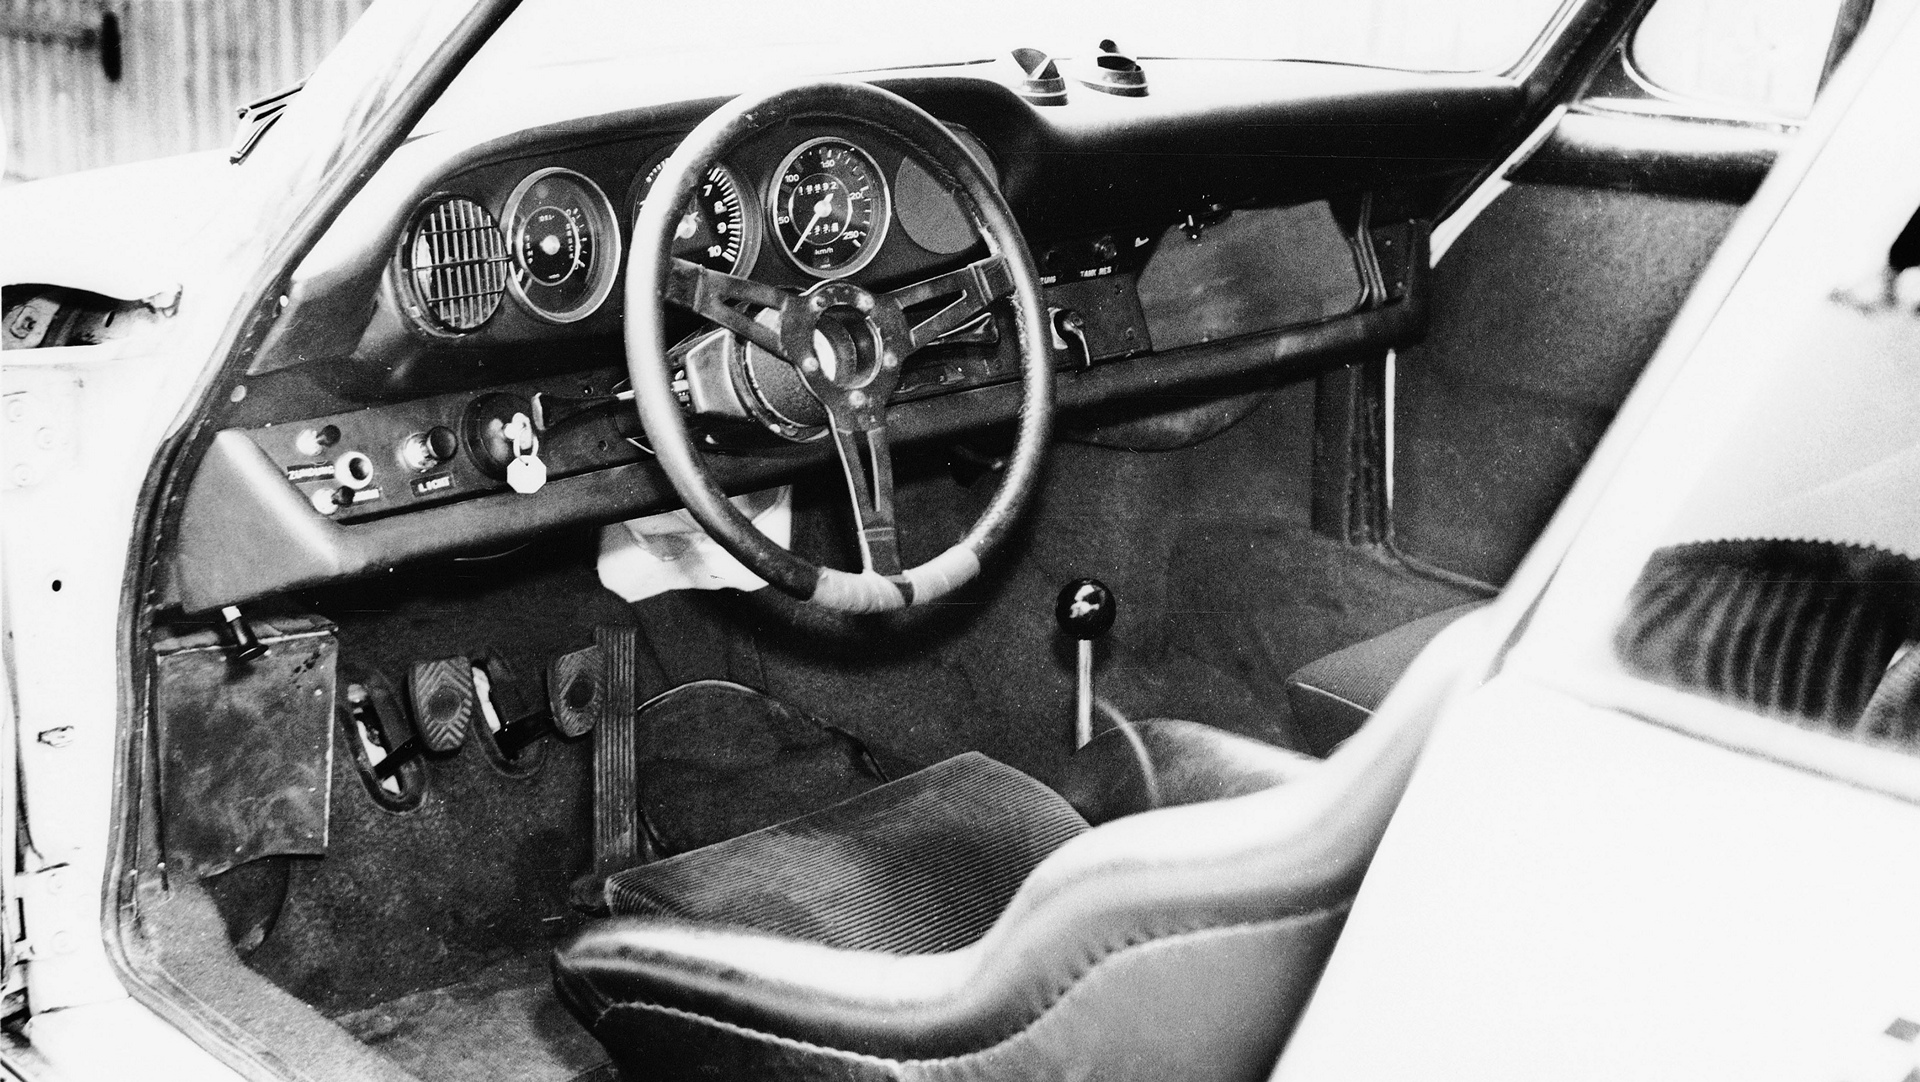 Interior of the 911 R, 1967 © Dr. Ing. h.c. F. Porsche AG